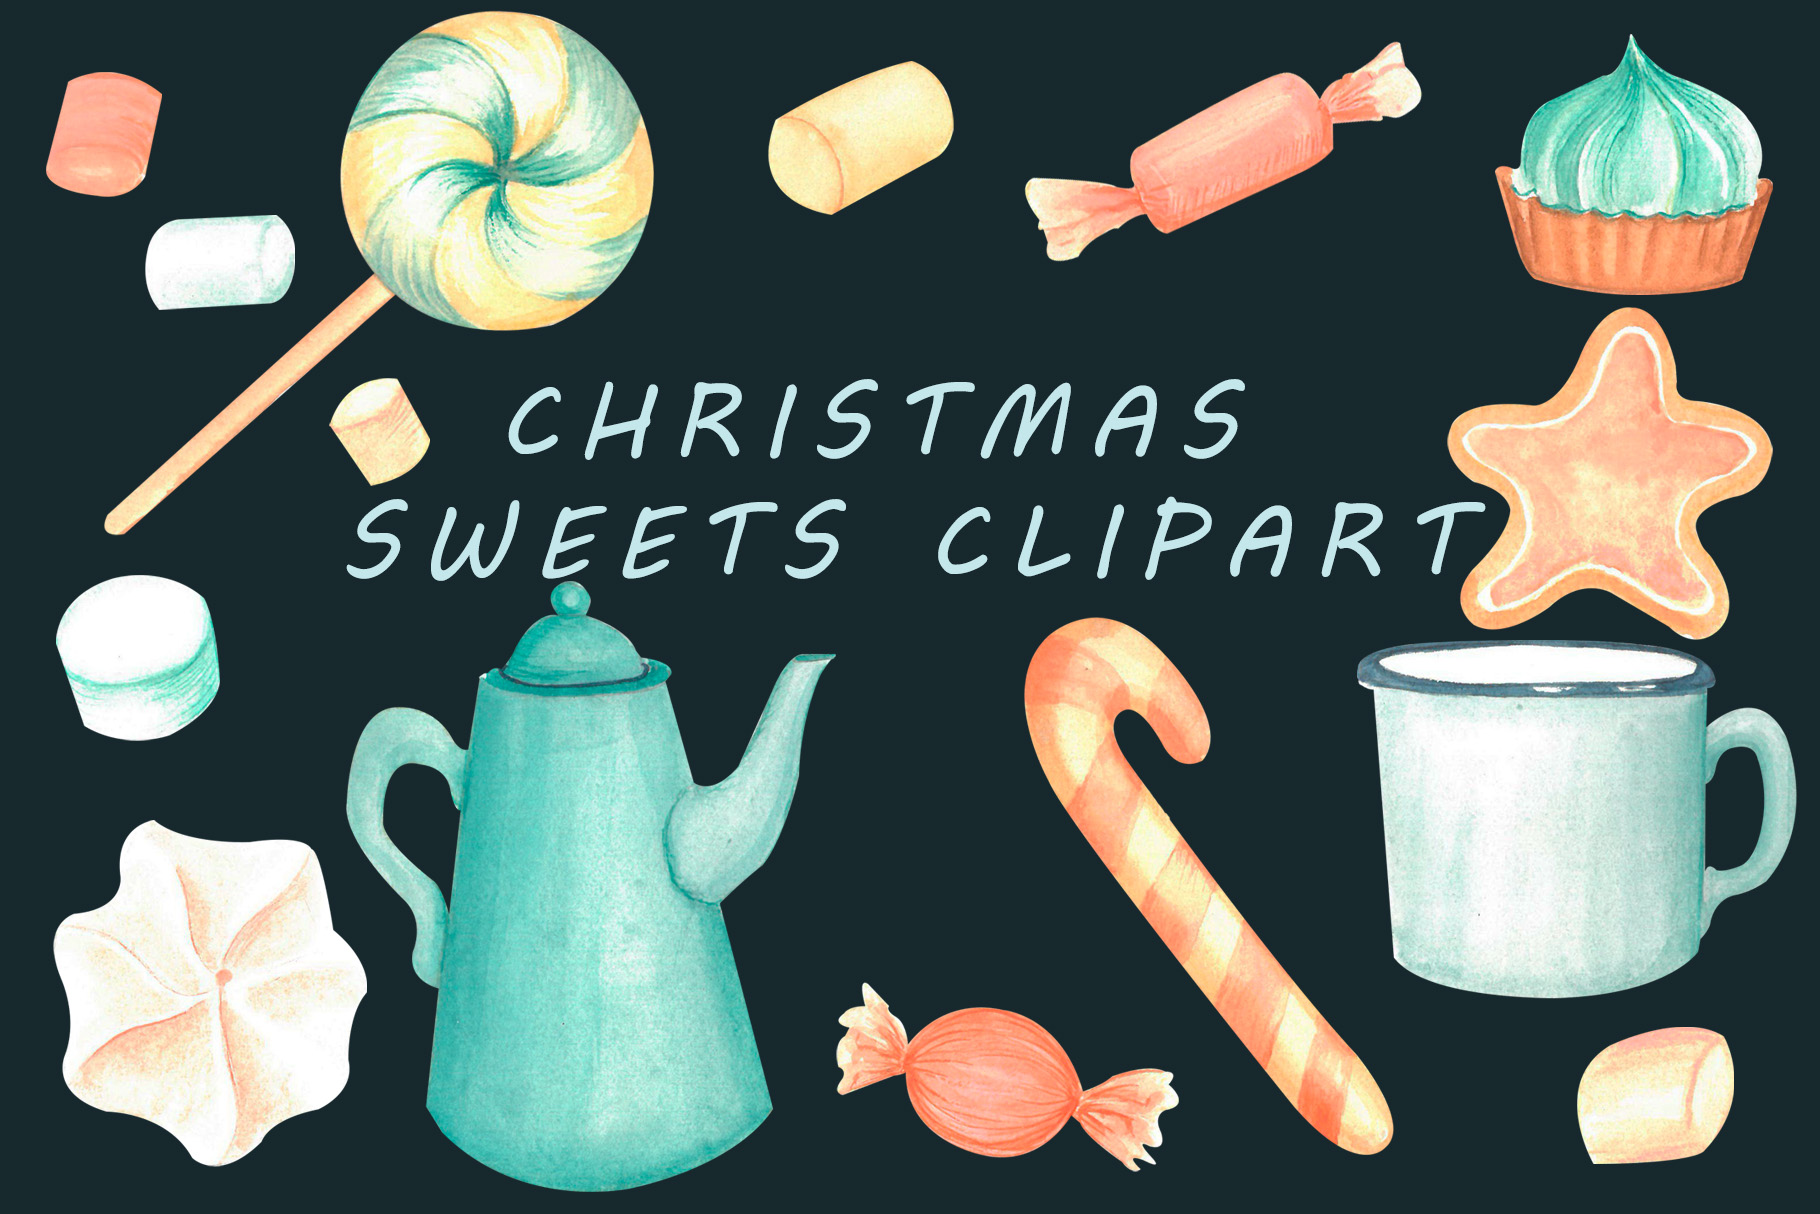 Christmas sweets watercolor clipart example image 1